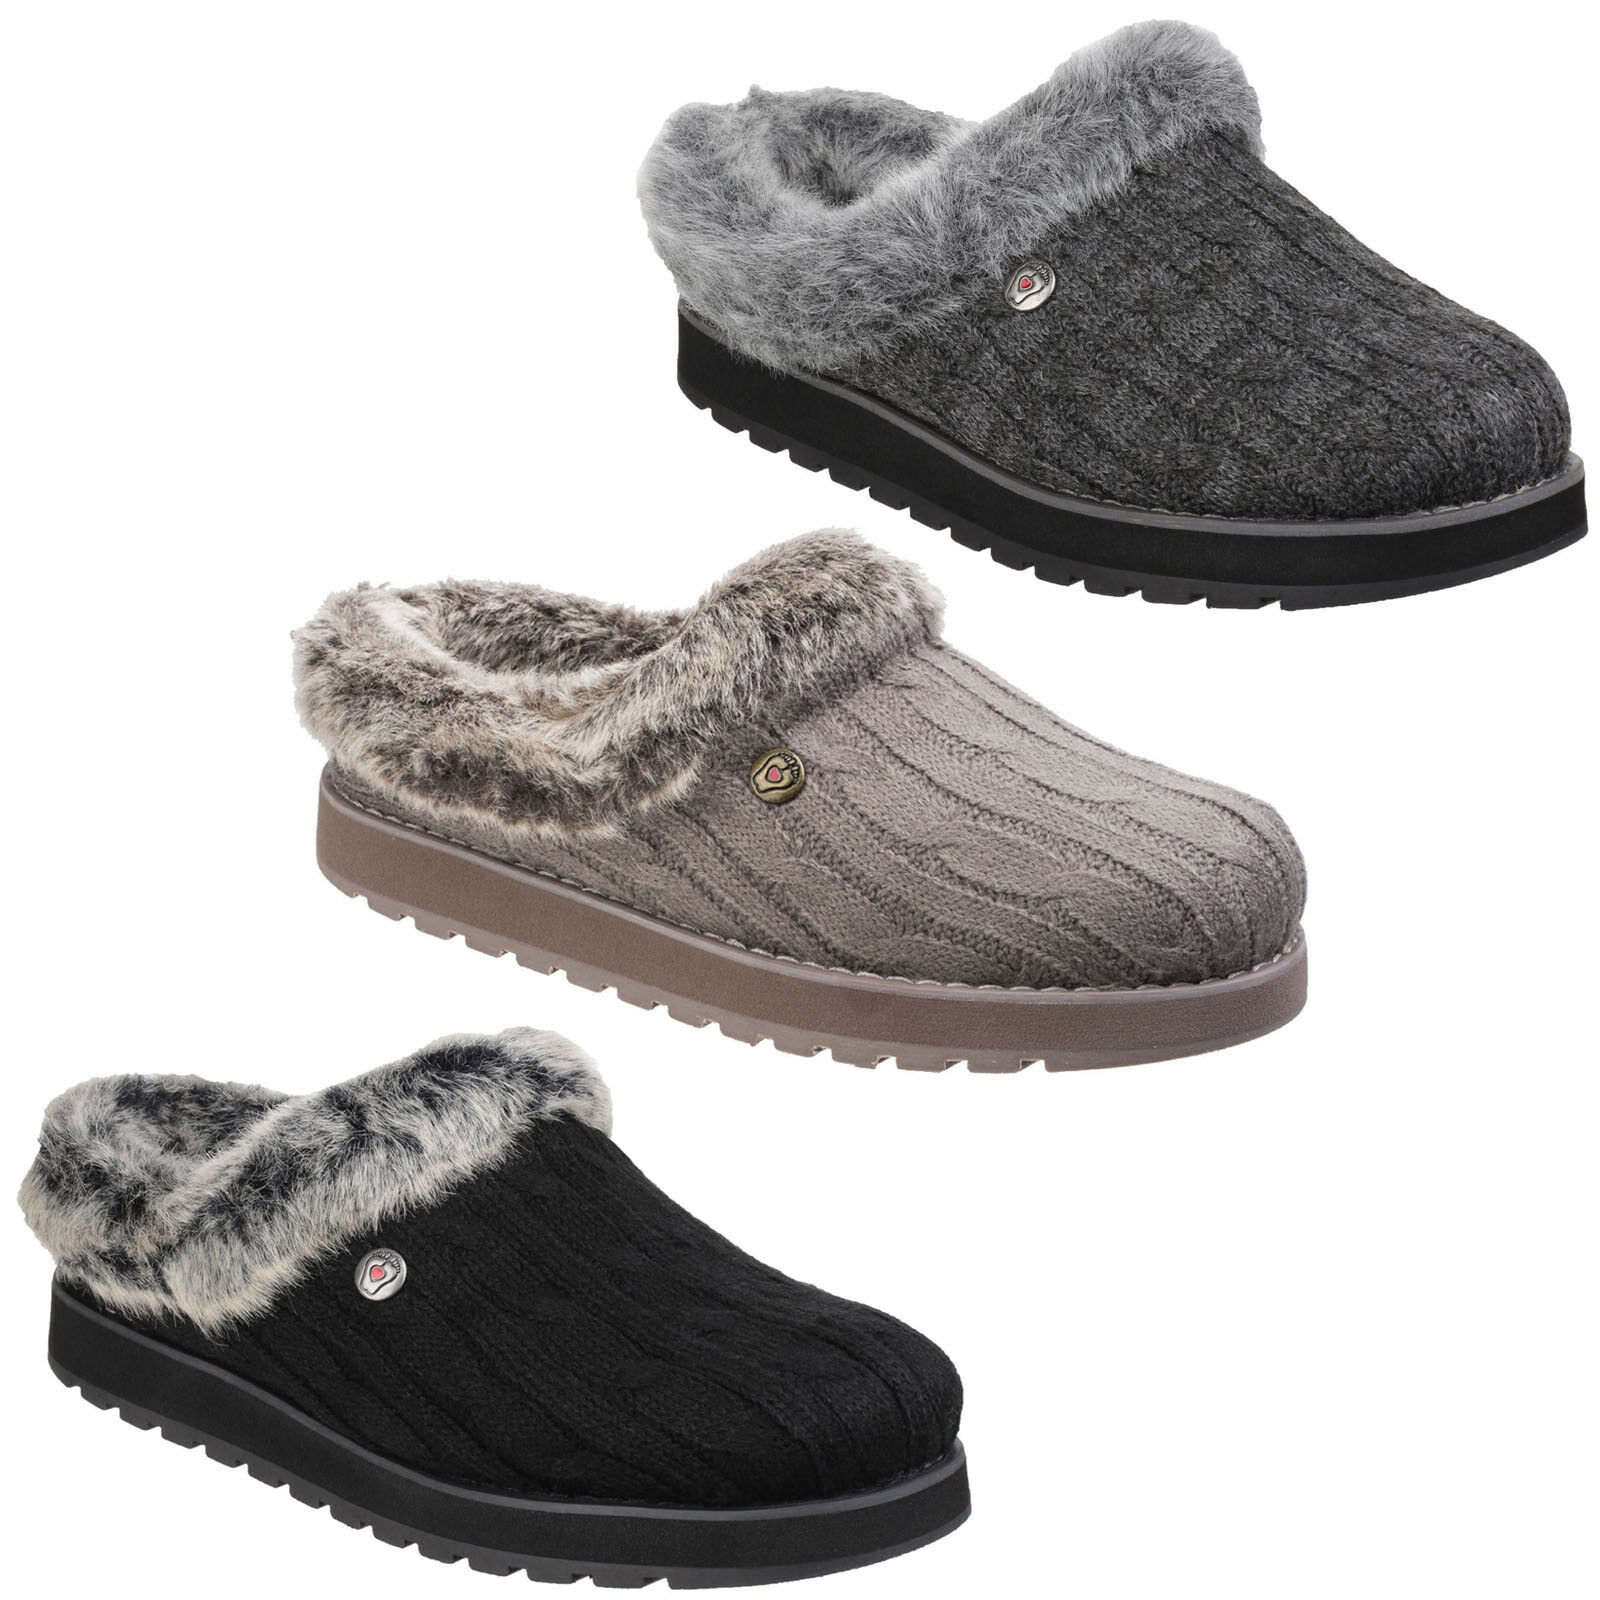 Ice Angel Knitted Mule Slippers